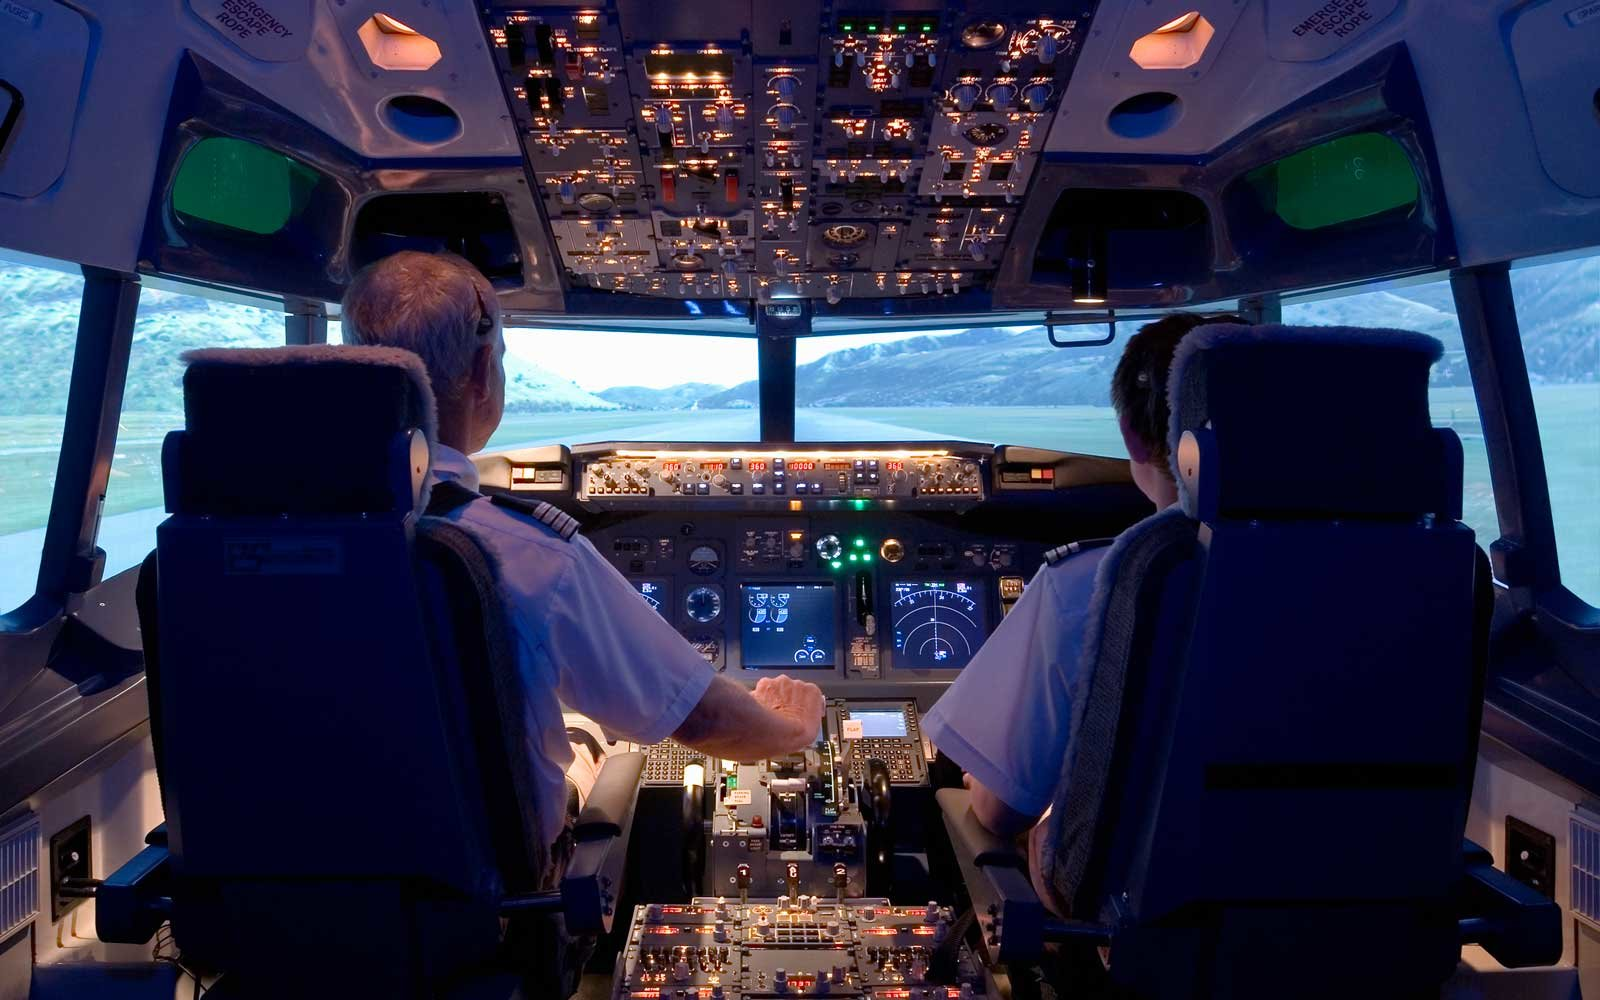 Two pilots in the cockpit of a plane